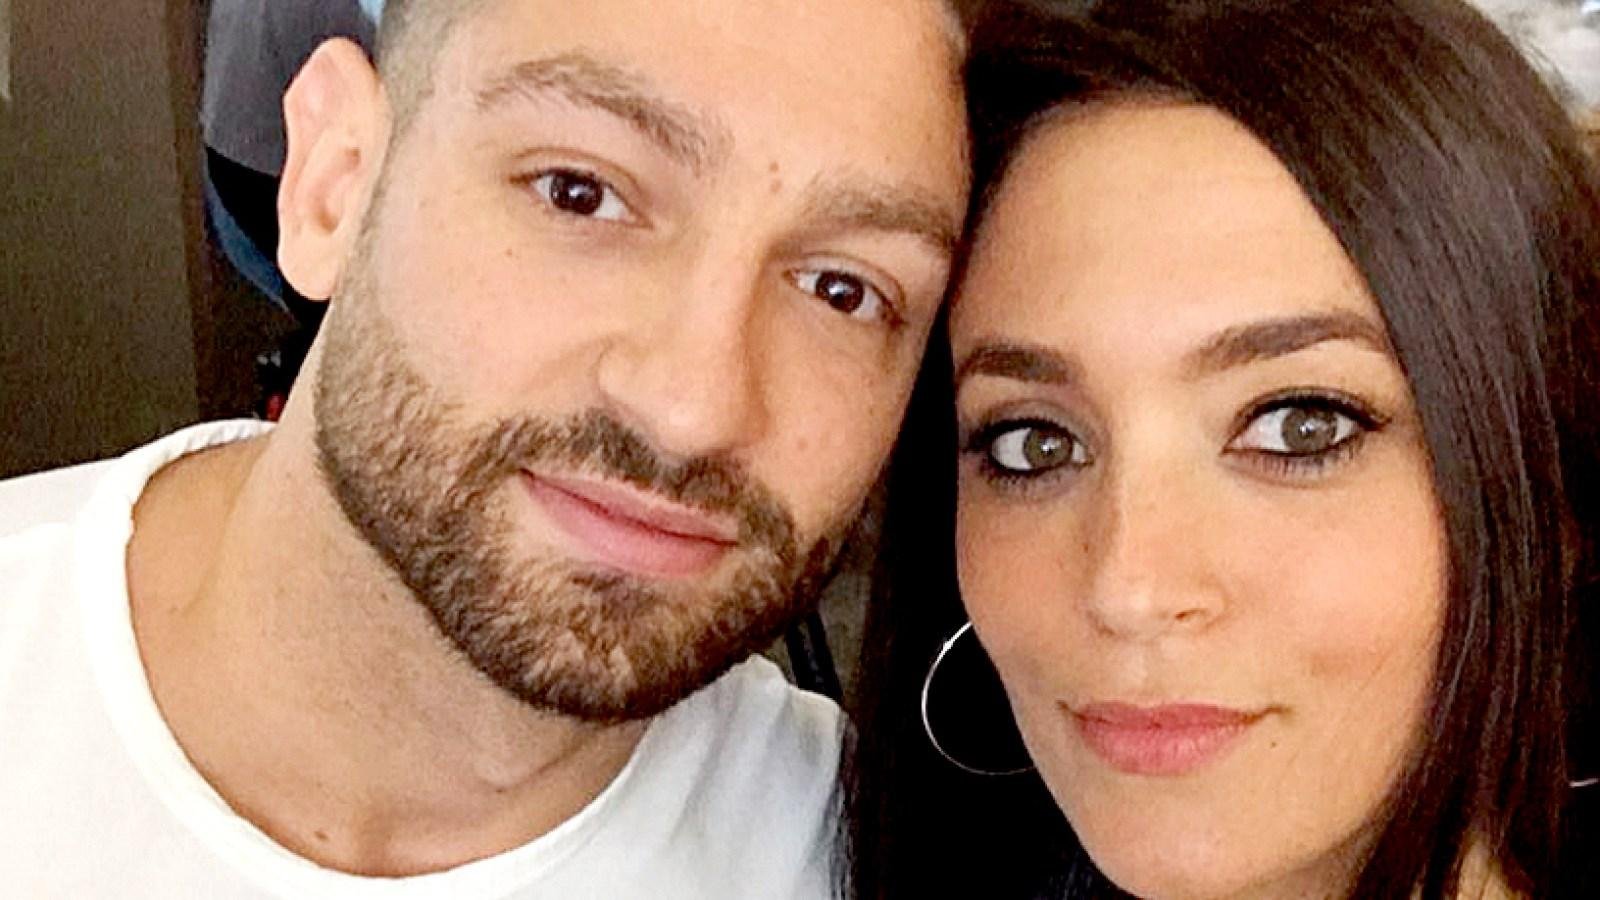 Sammi Giancola Wants To Tie The Knot And Have A Baby With Boyfriend Christian Biscardi ASAP, Source Says!